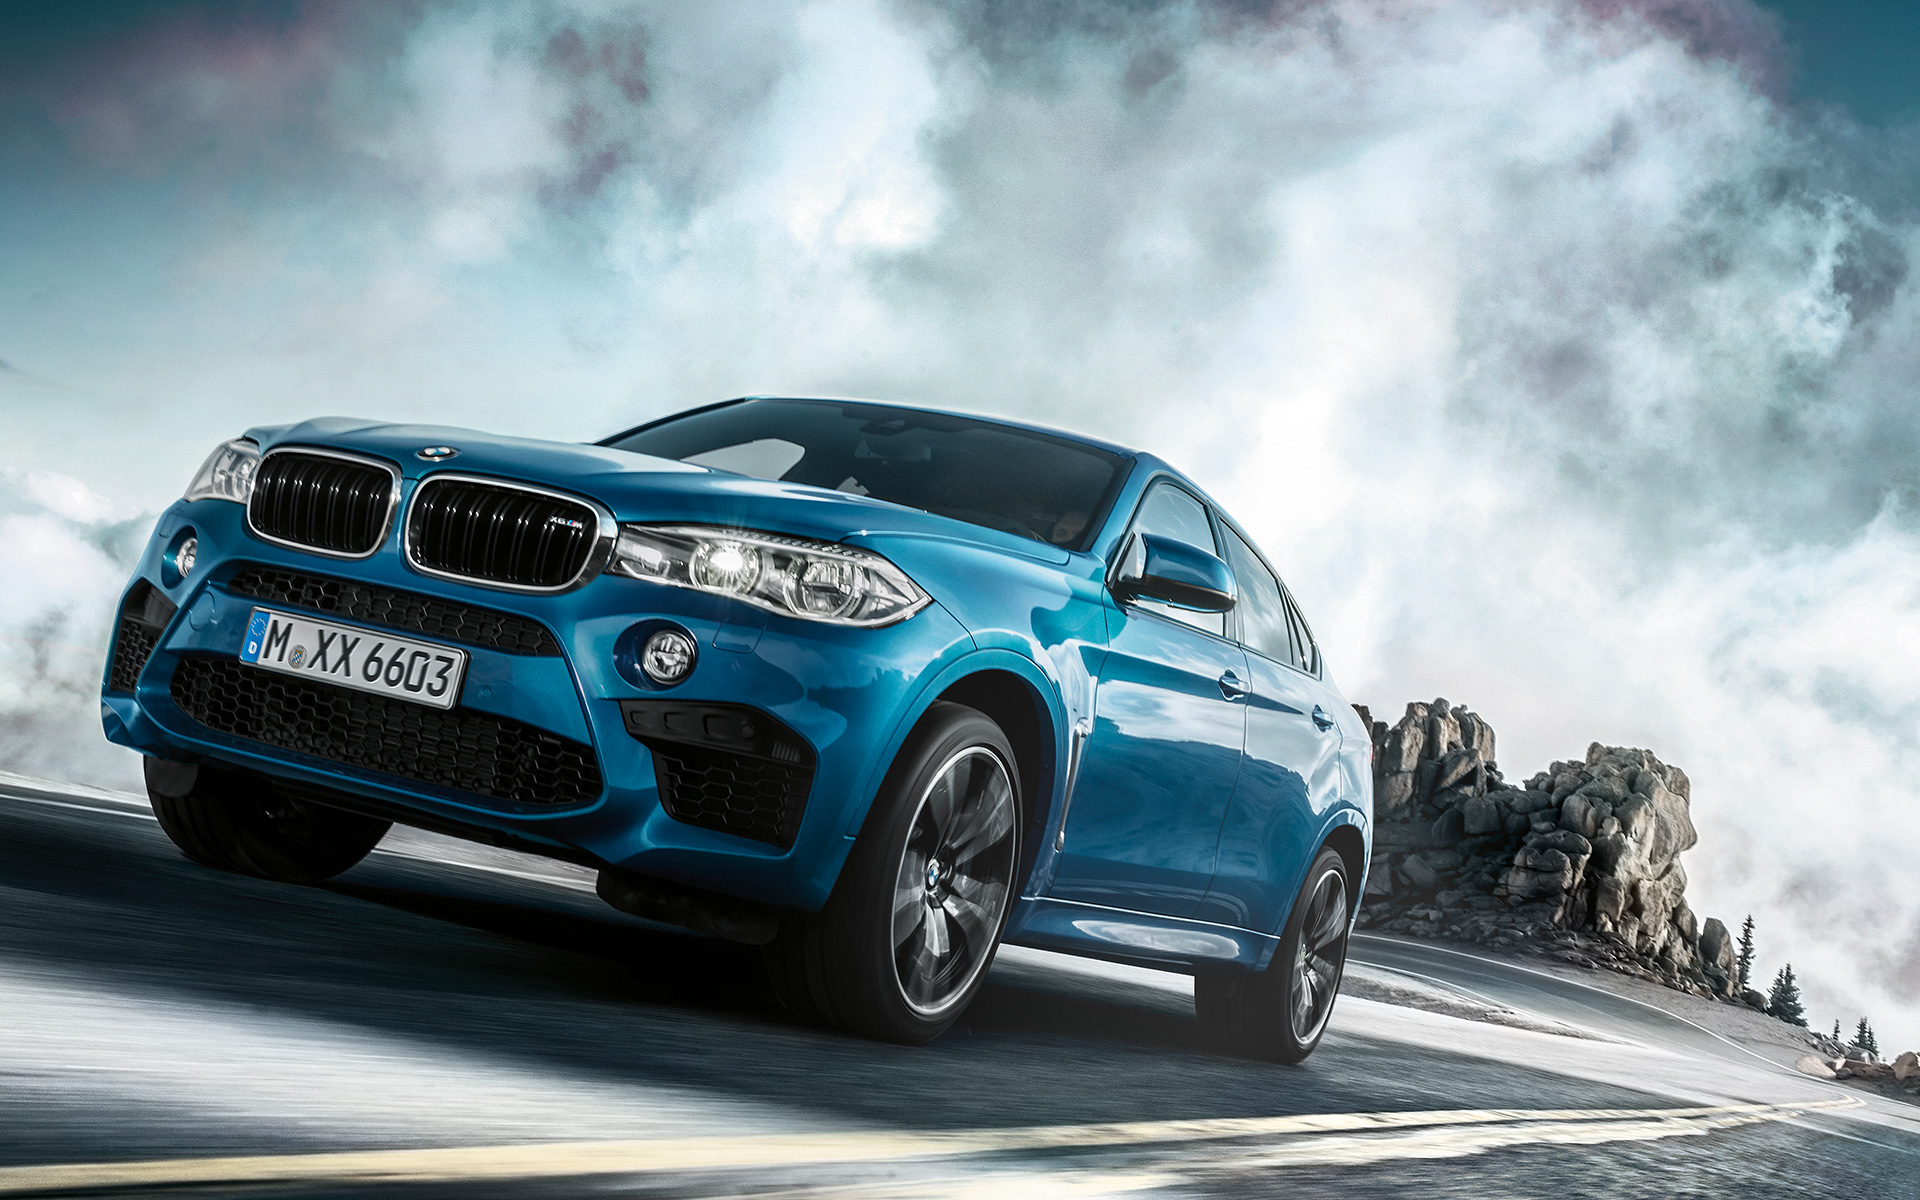 BMW X6 M - Front View hill driving